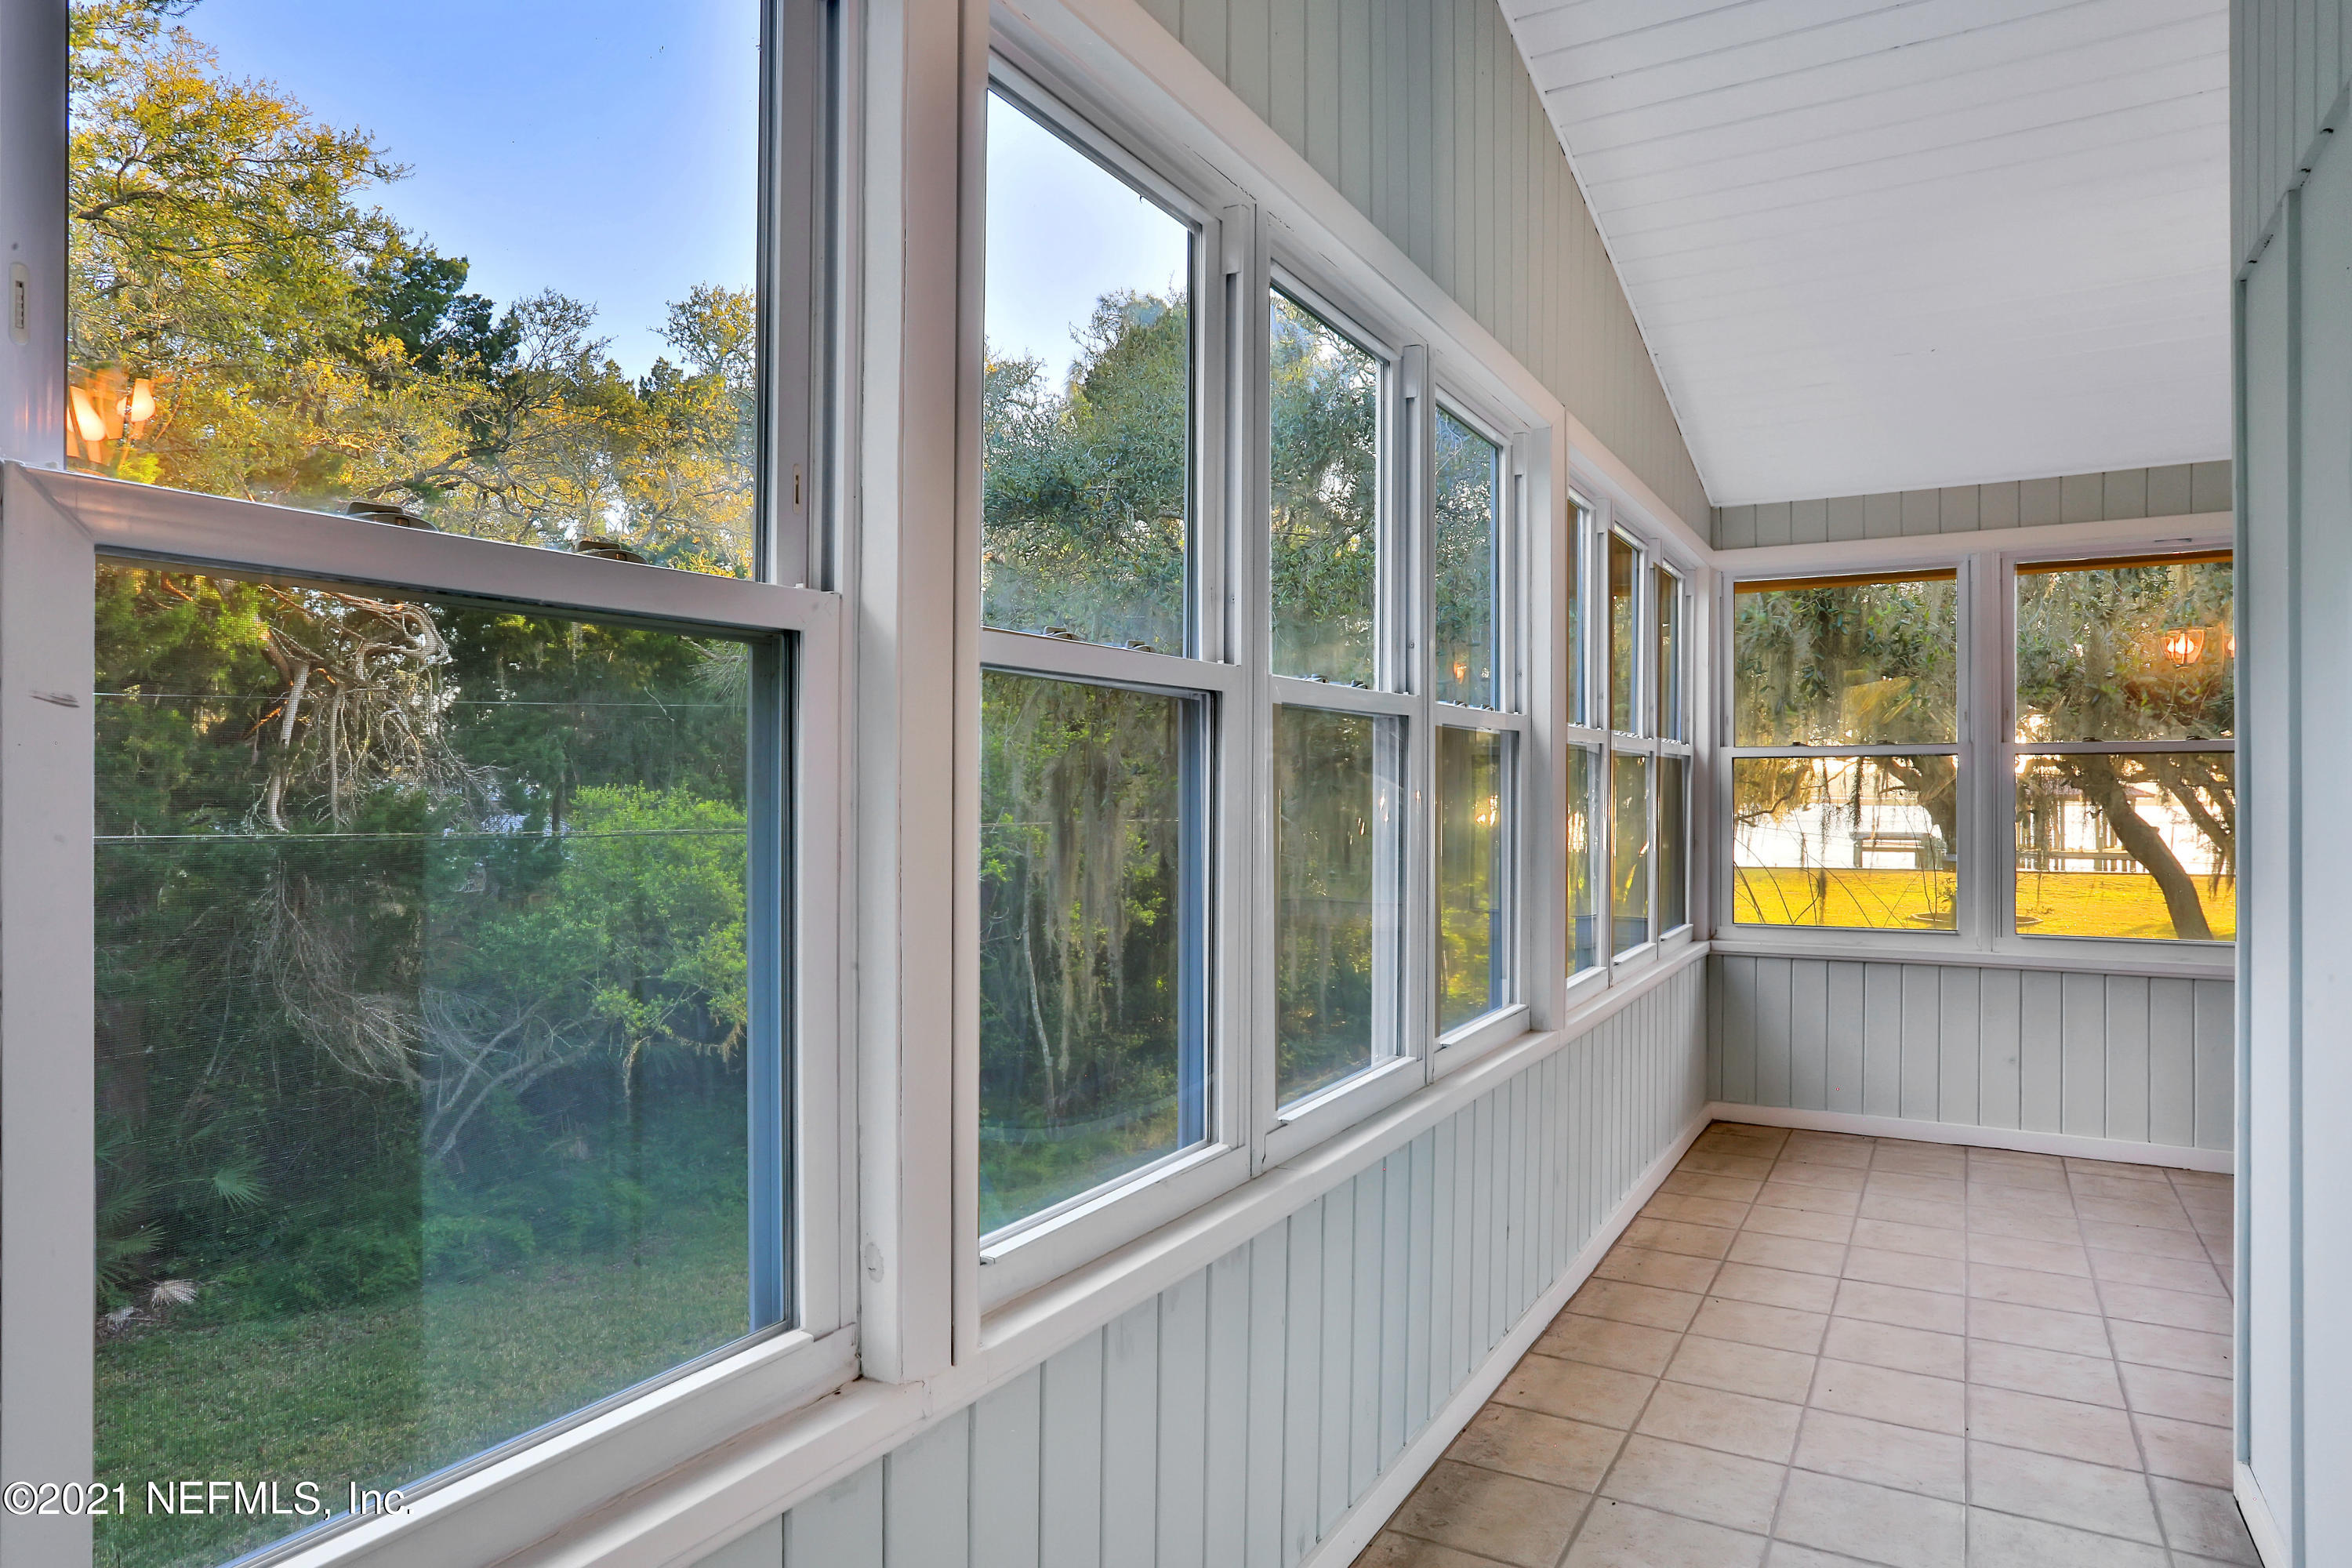 520 & 510 FIRST, ST AUGUSTINE, FLORIDA 32084, 4 Bedrooms Bedrooms, ,2 BathroomsBathrooms,Residential,For sale,FIRST,1101157